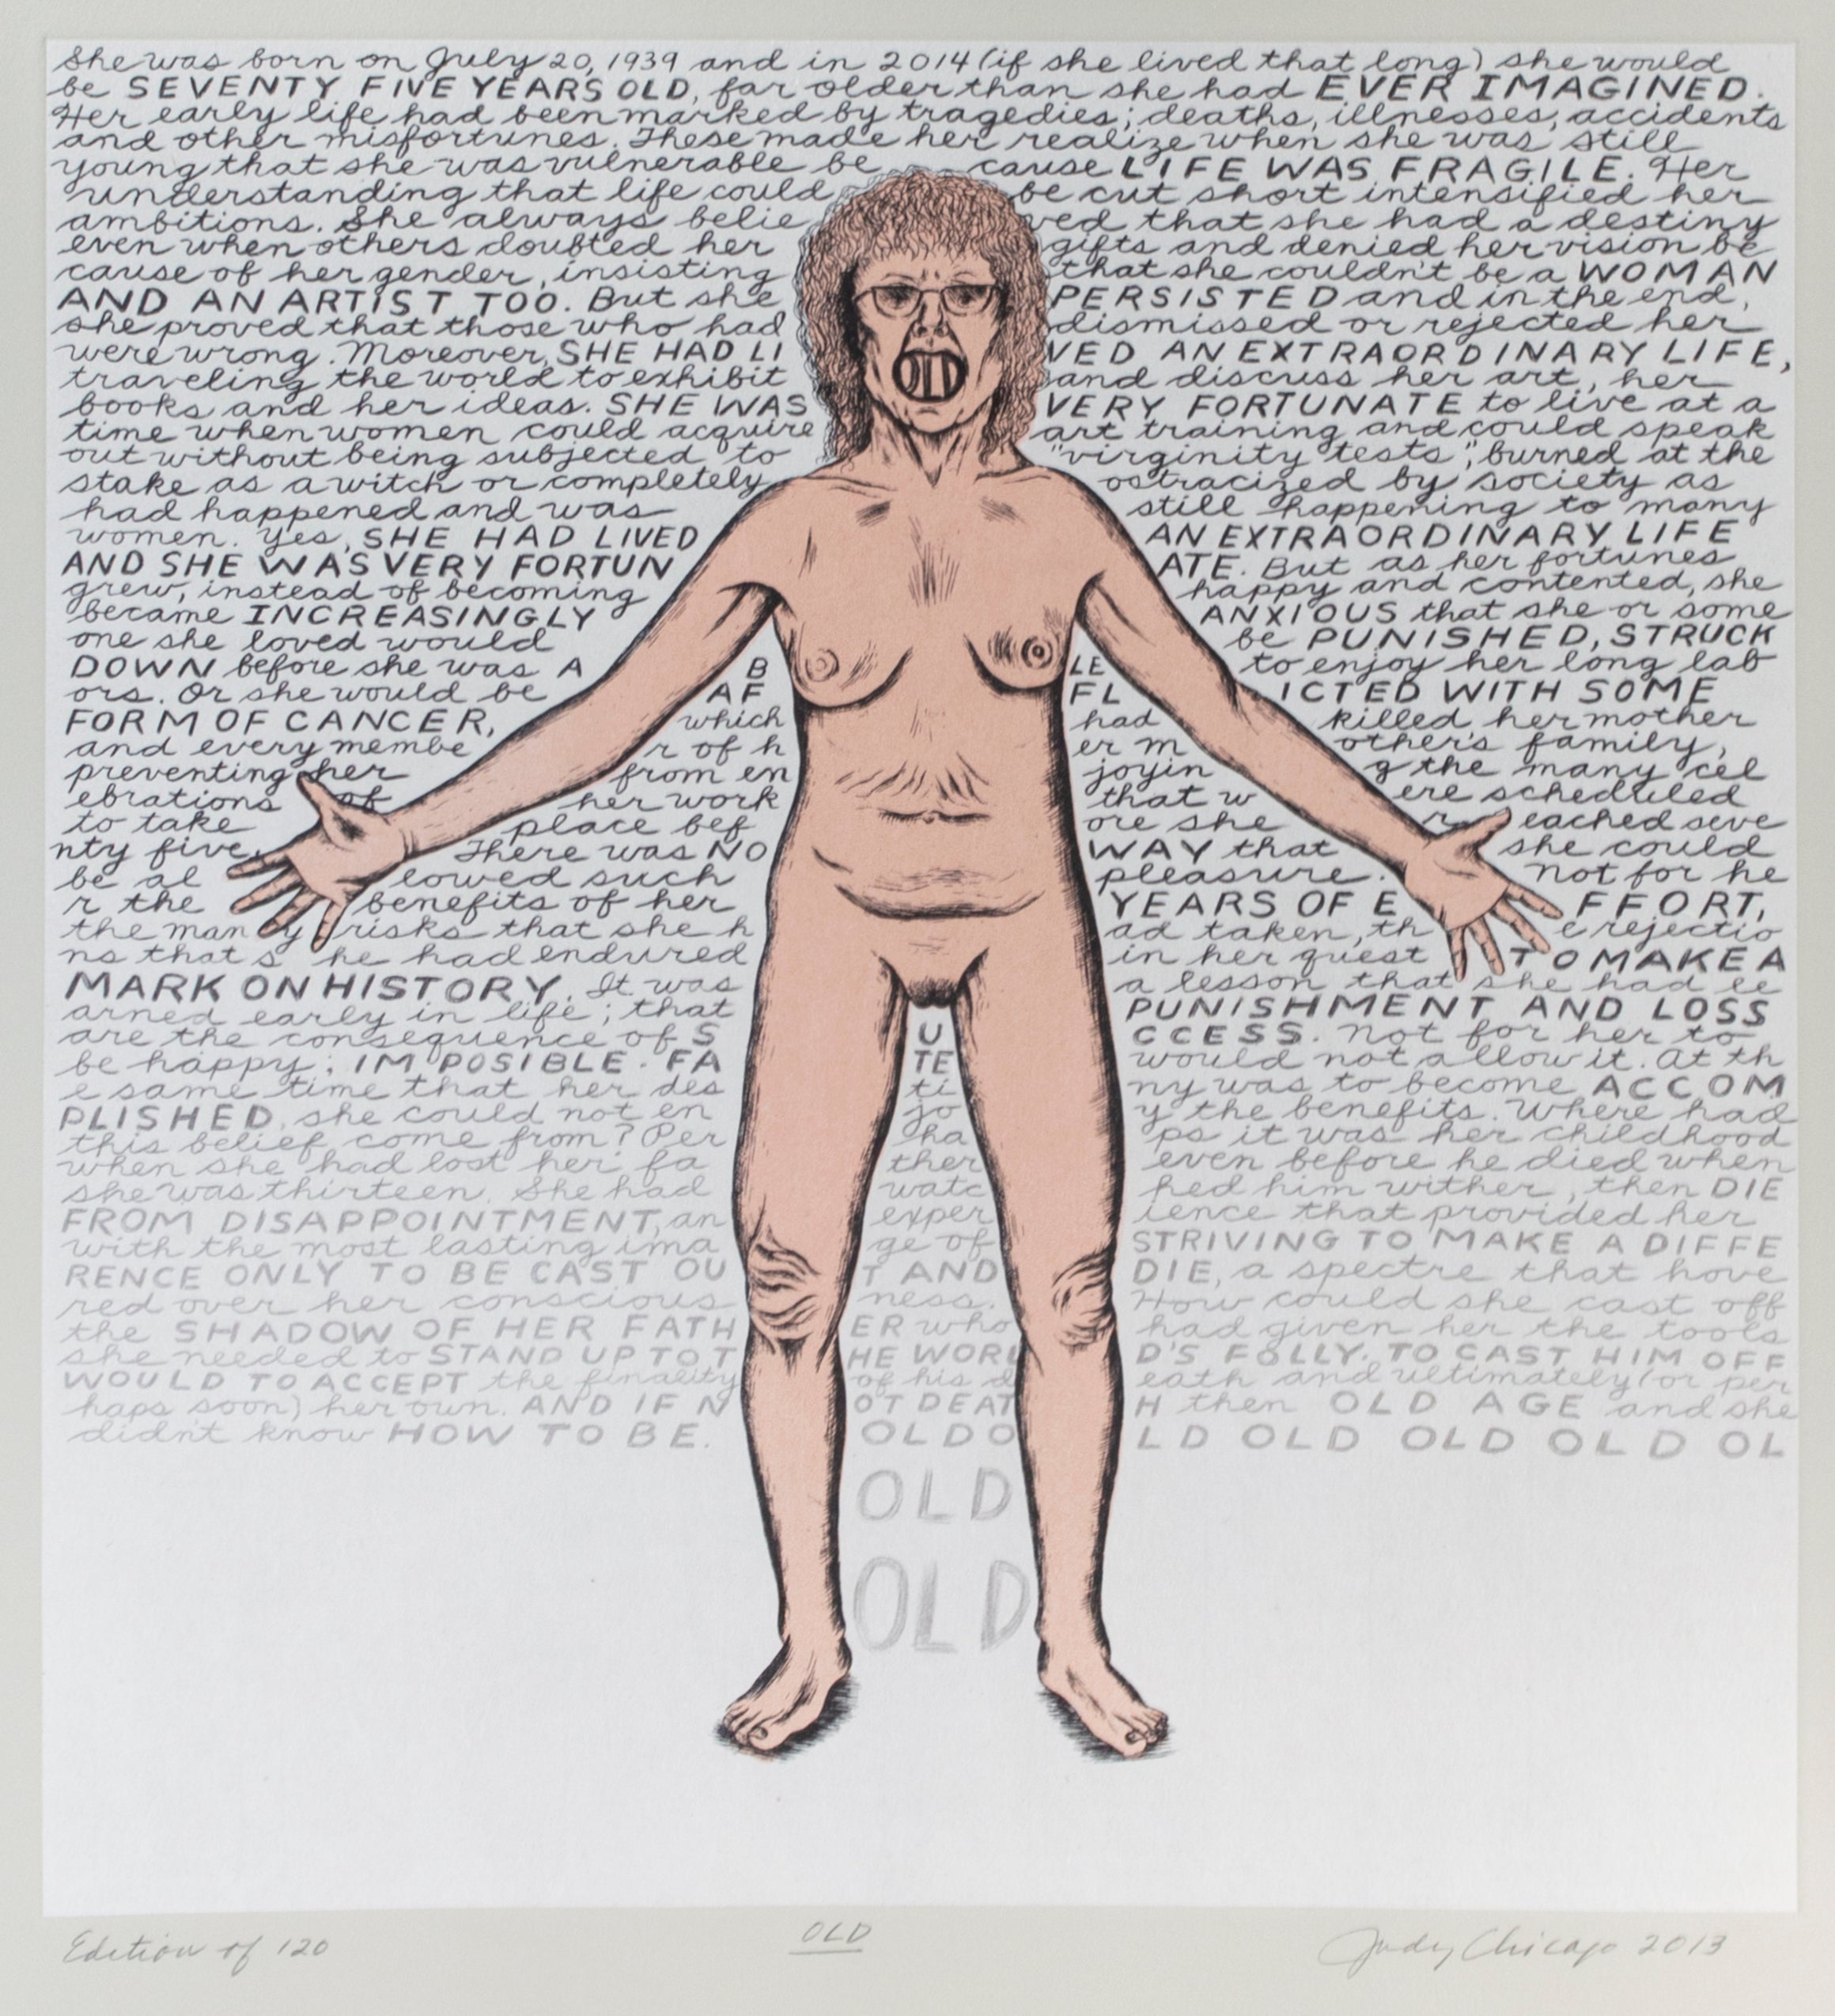 'Old,' original signed print by Judy Chicago from Madison Print Club